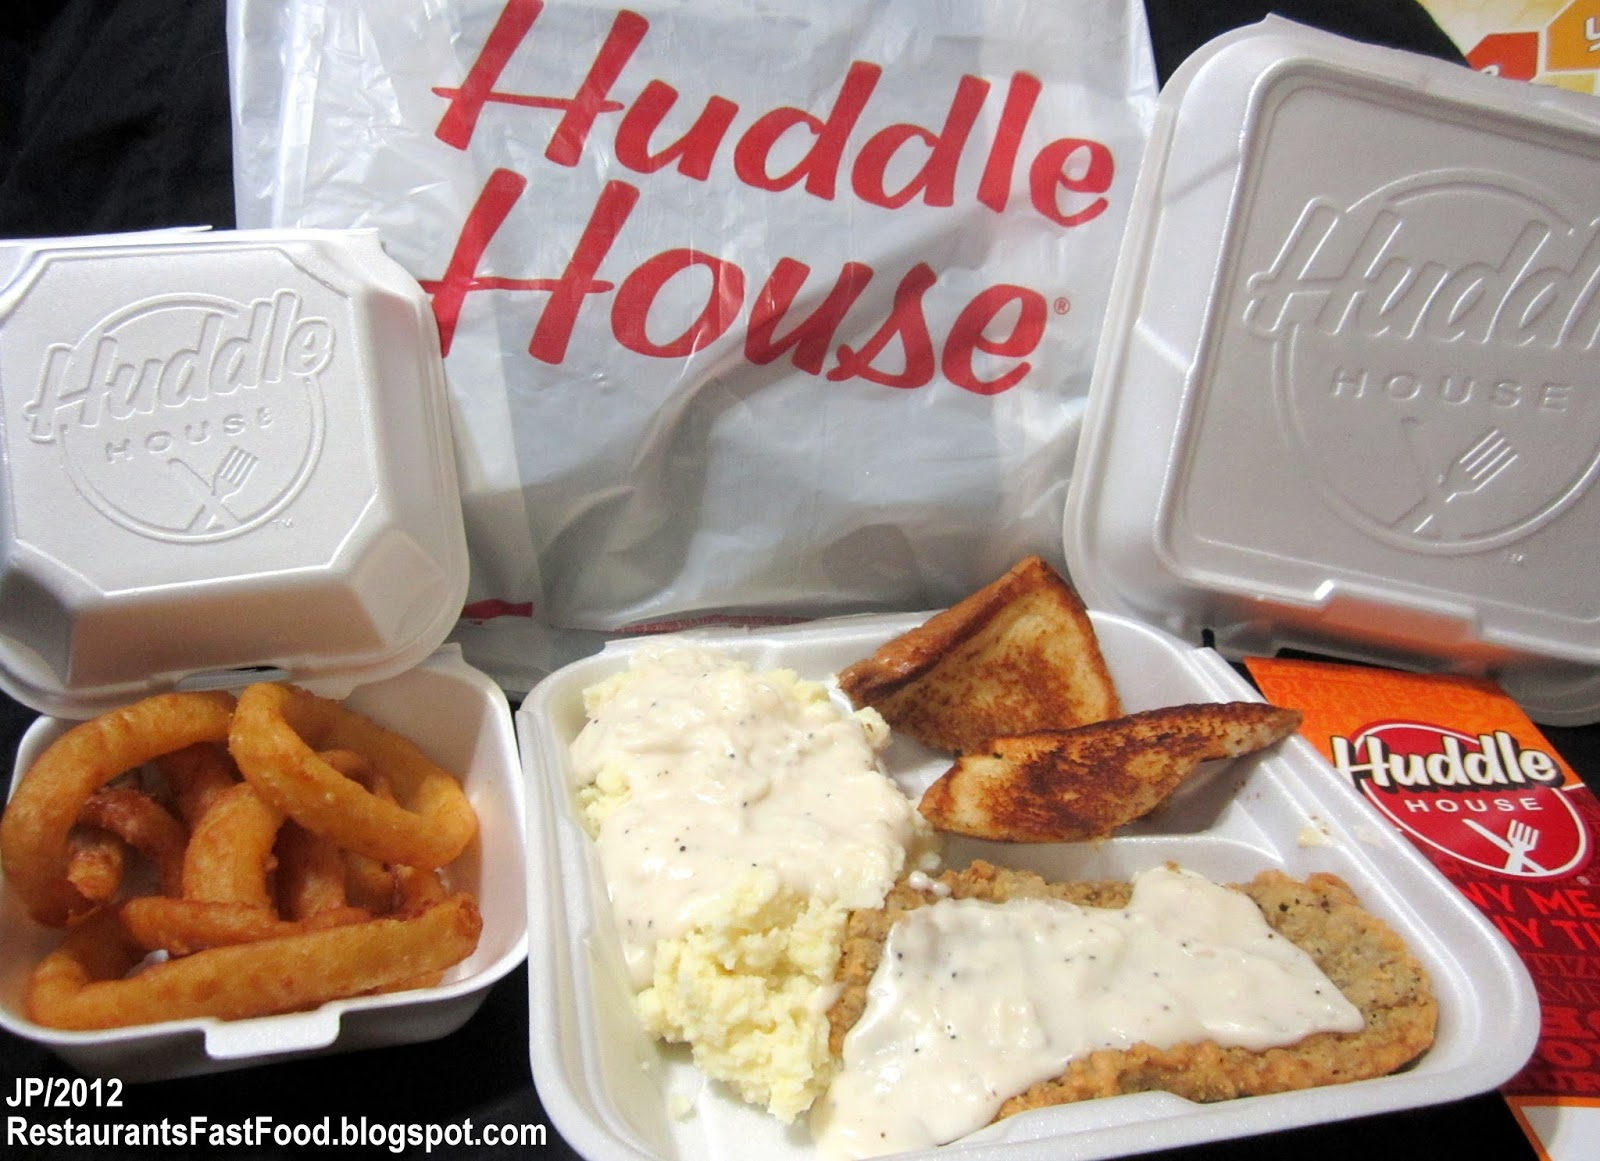 Huddle House Diner Restaurant Country Fried Steak Dinner To Go 1 Lb 11 Oz Mashed Potato Gravy Onion Rings Texas Toast Meal